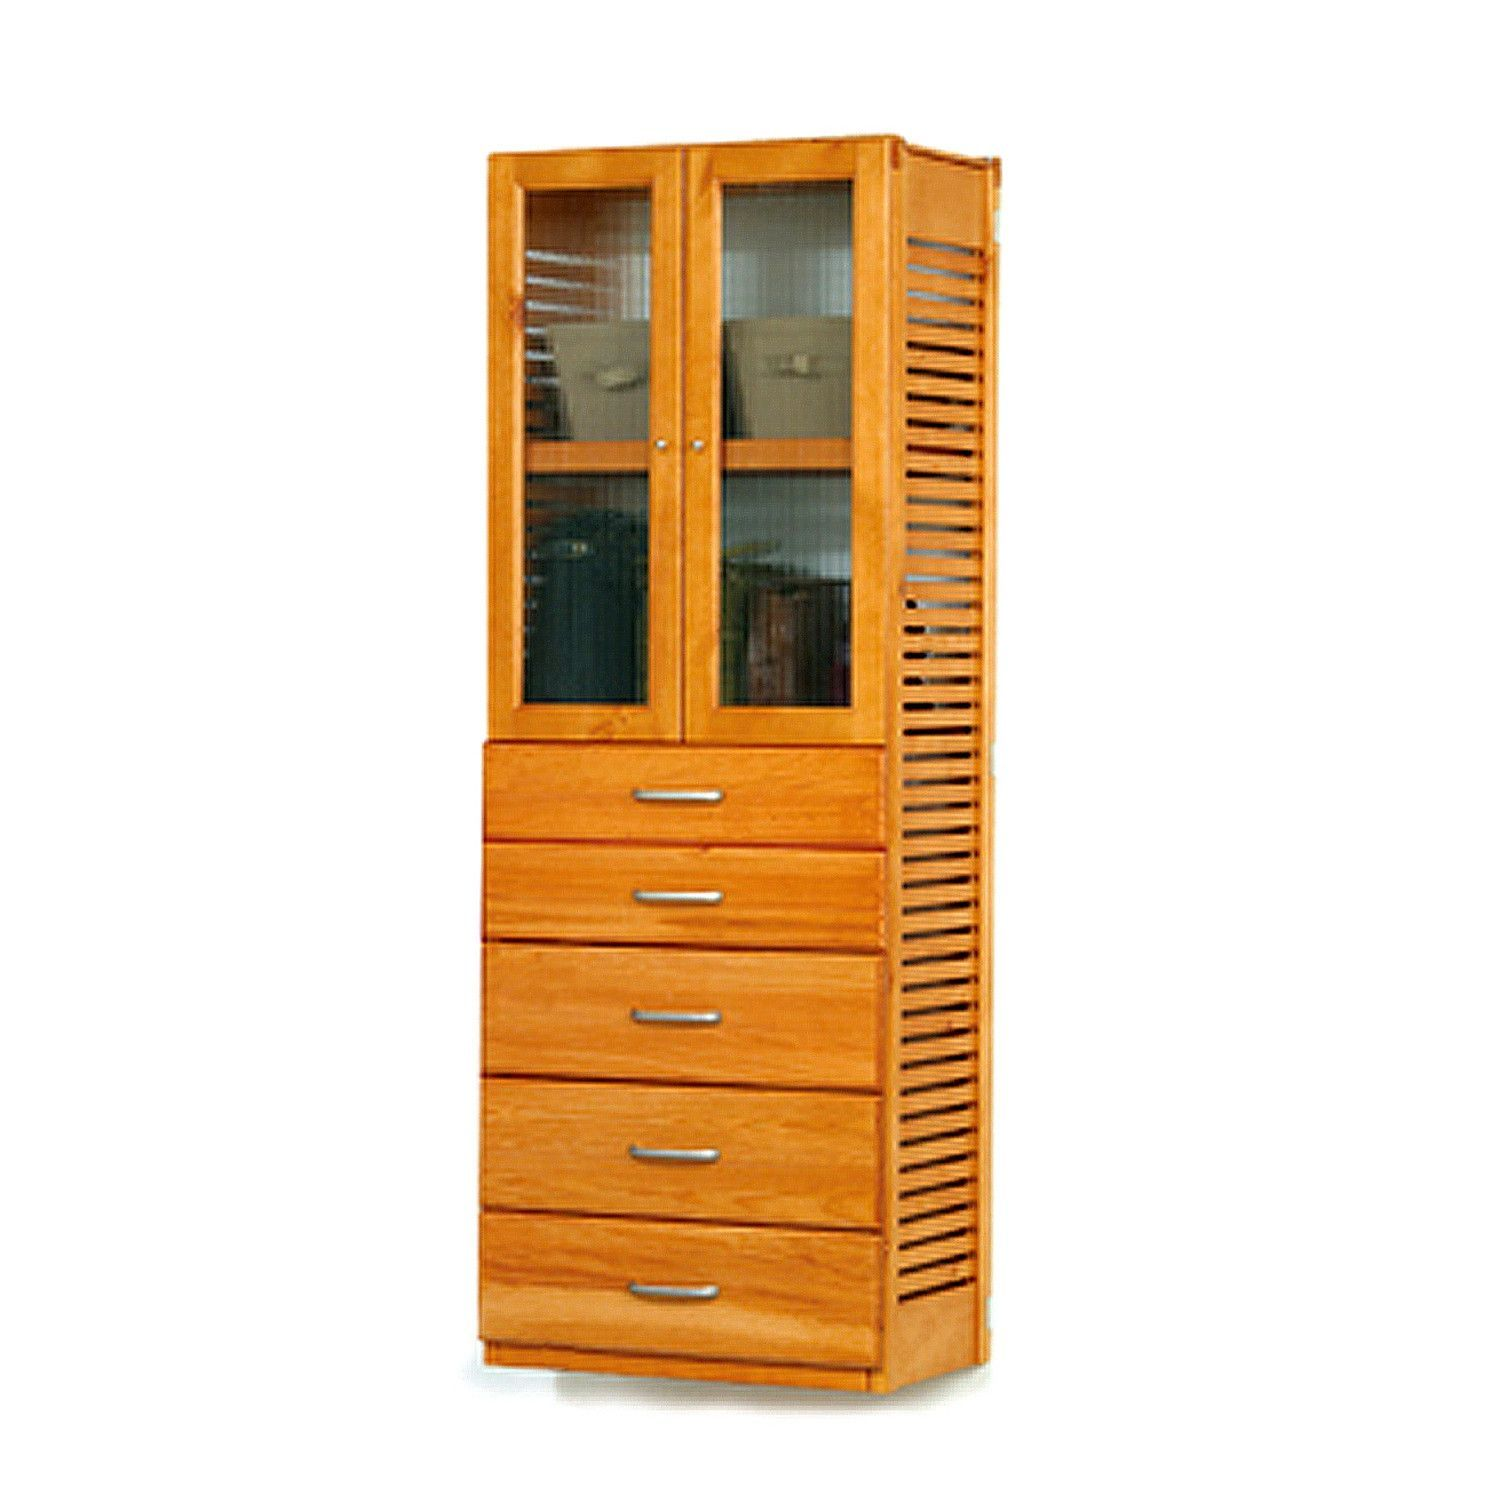 16 Deep Standalone Tower With Door And 5 Drawers Closet Kits Closet Organizing Systems